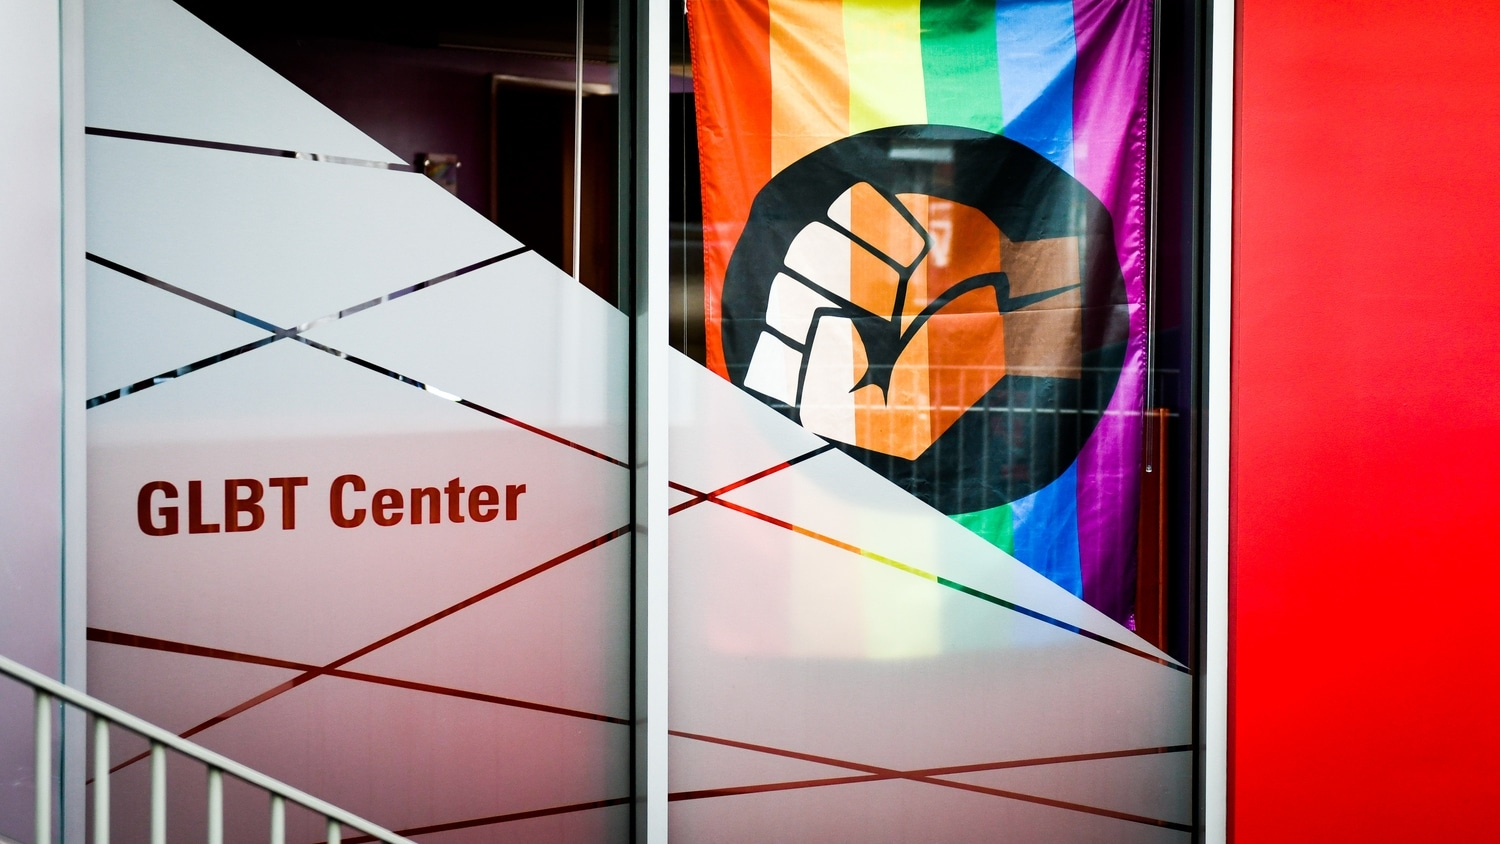 the entrance to the GLBT center adorned with a rainbow flag